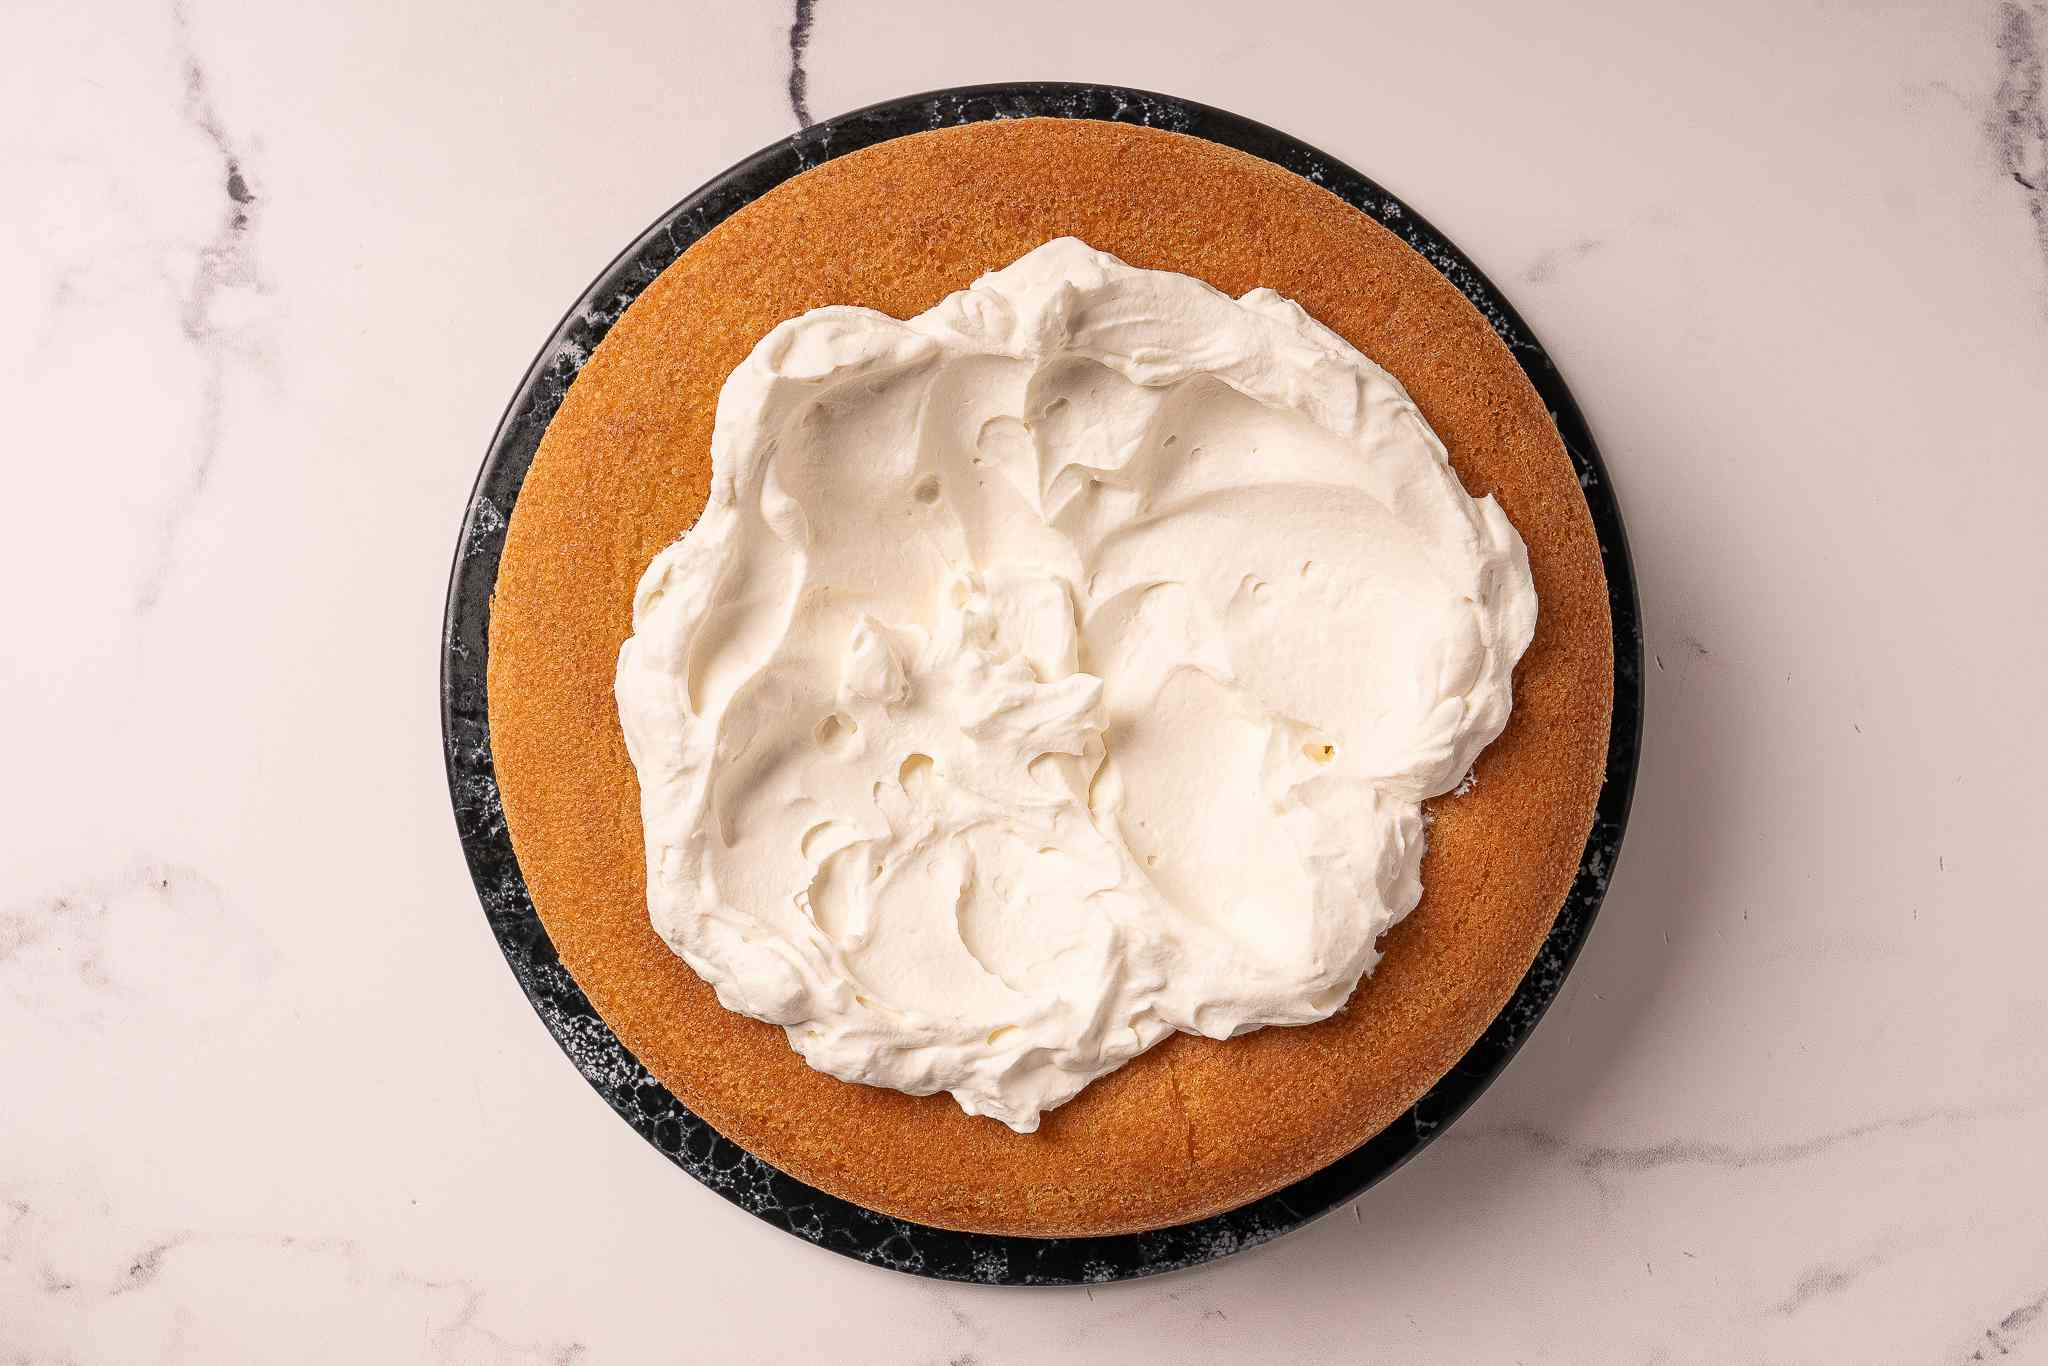 Savarin with whipped cream in the center